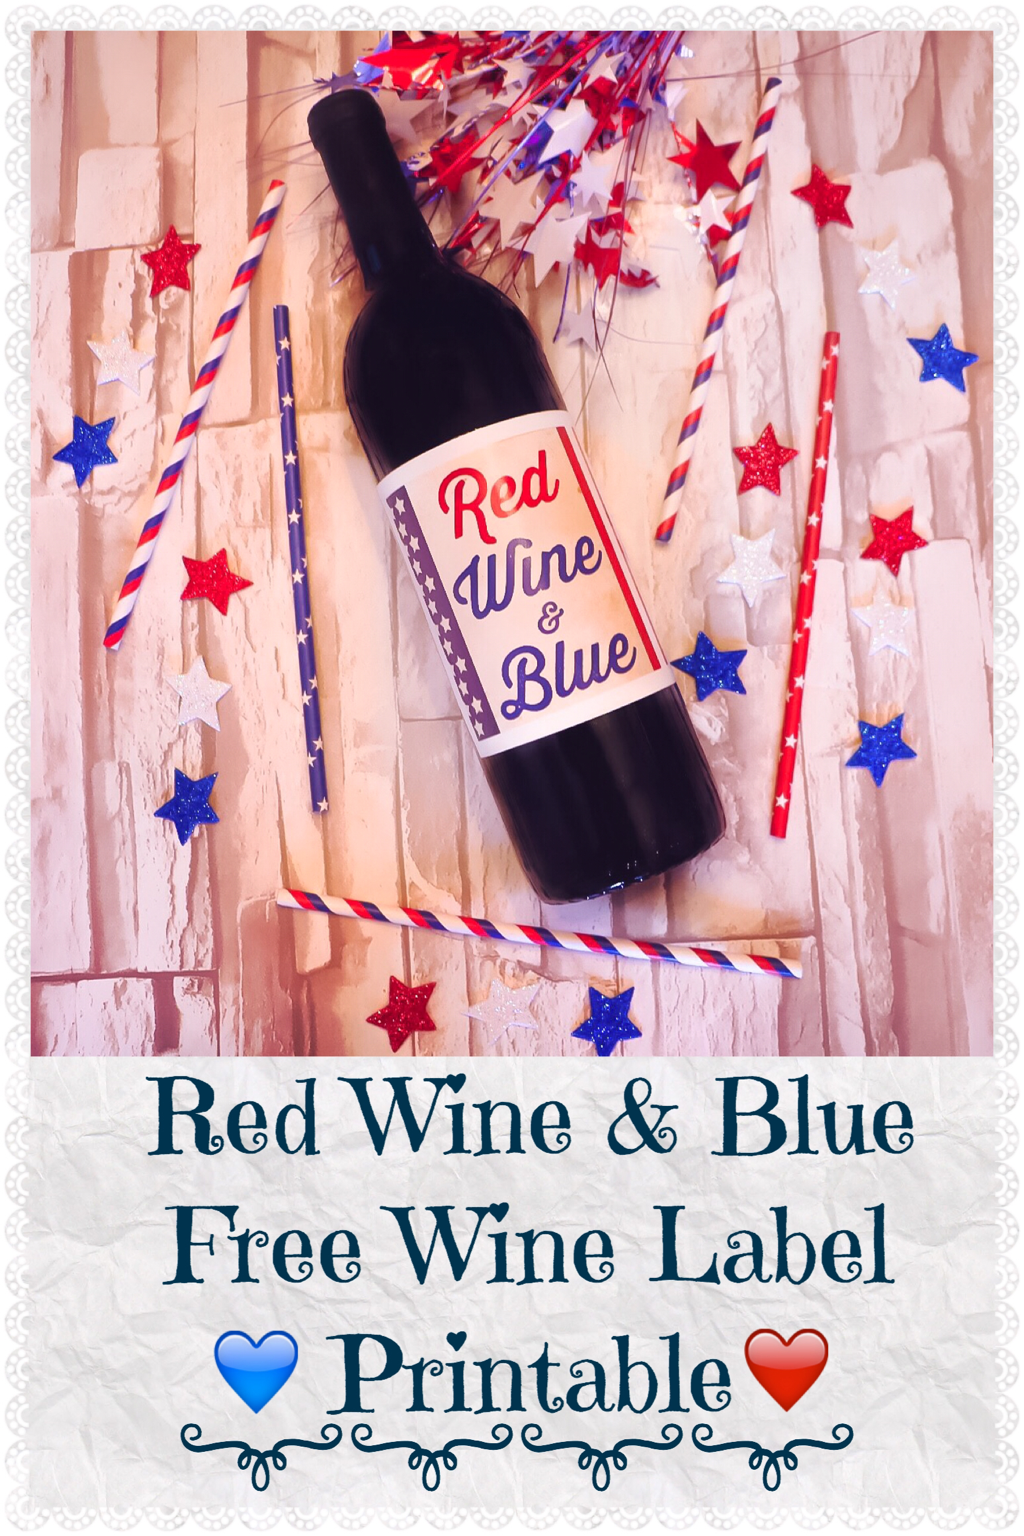 photo relating to Printable Trophy Labels called Purple WINE BLUE Free of charge WINE LABEL PRINTABLE The Trophy